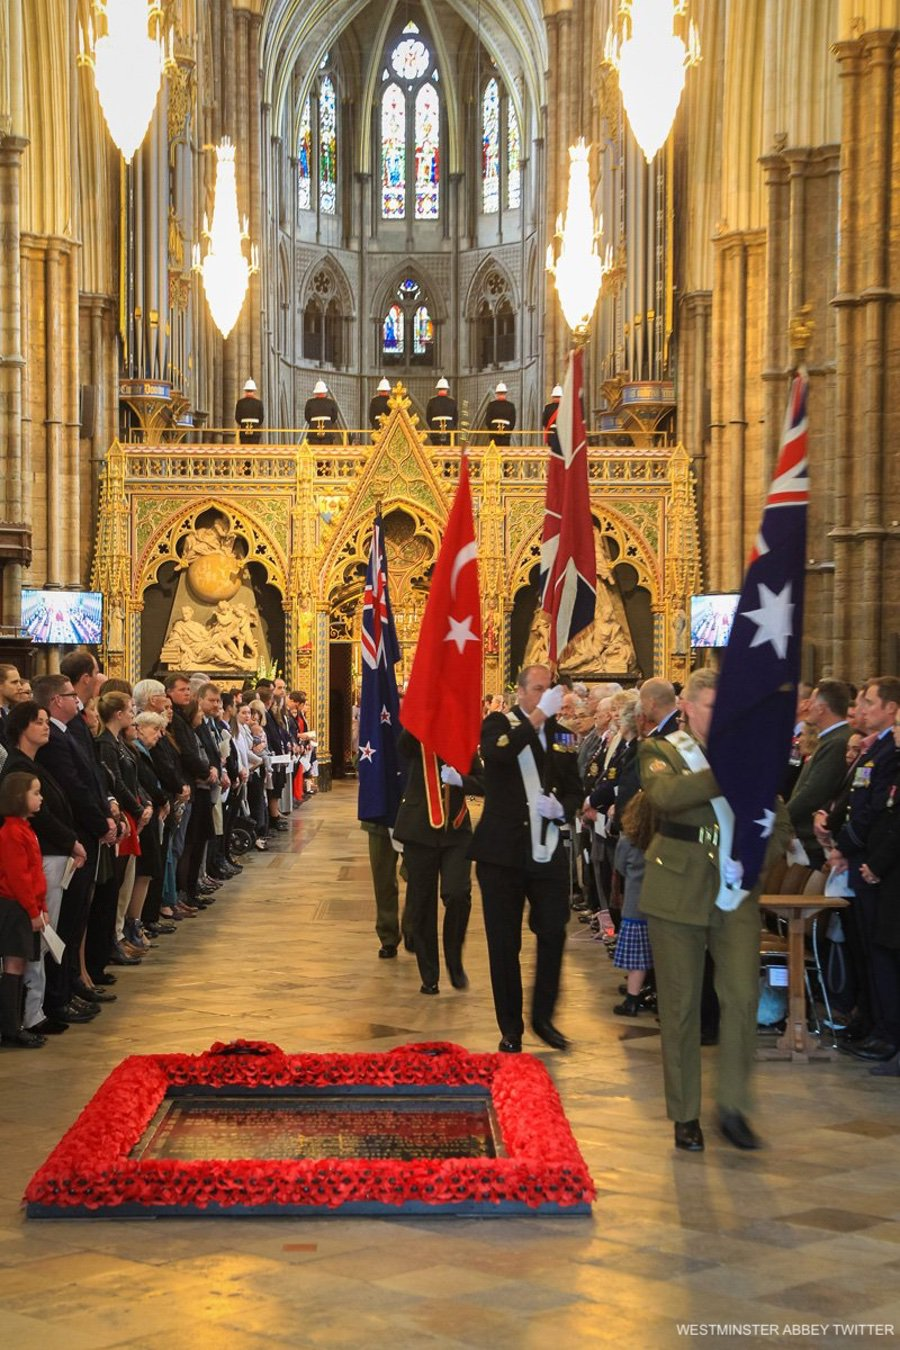 The flag procession on Anzac Day at Westminster Abbey